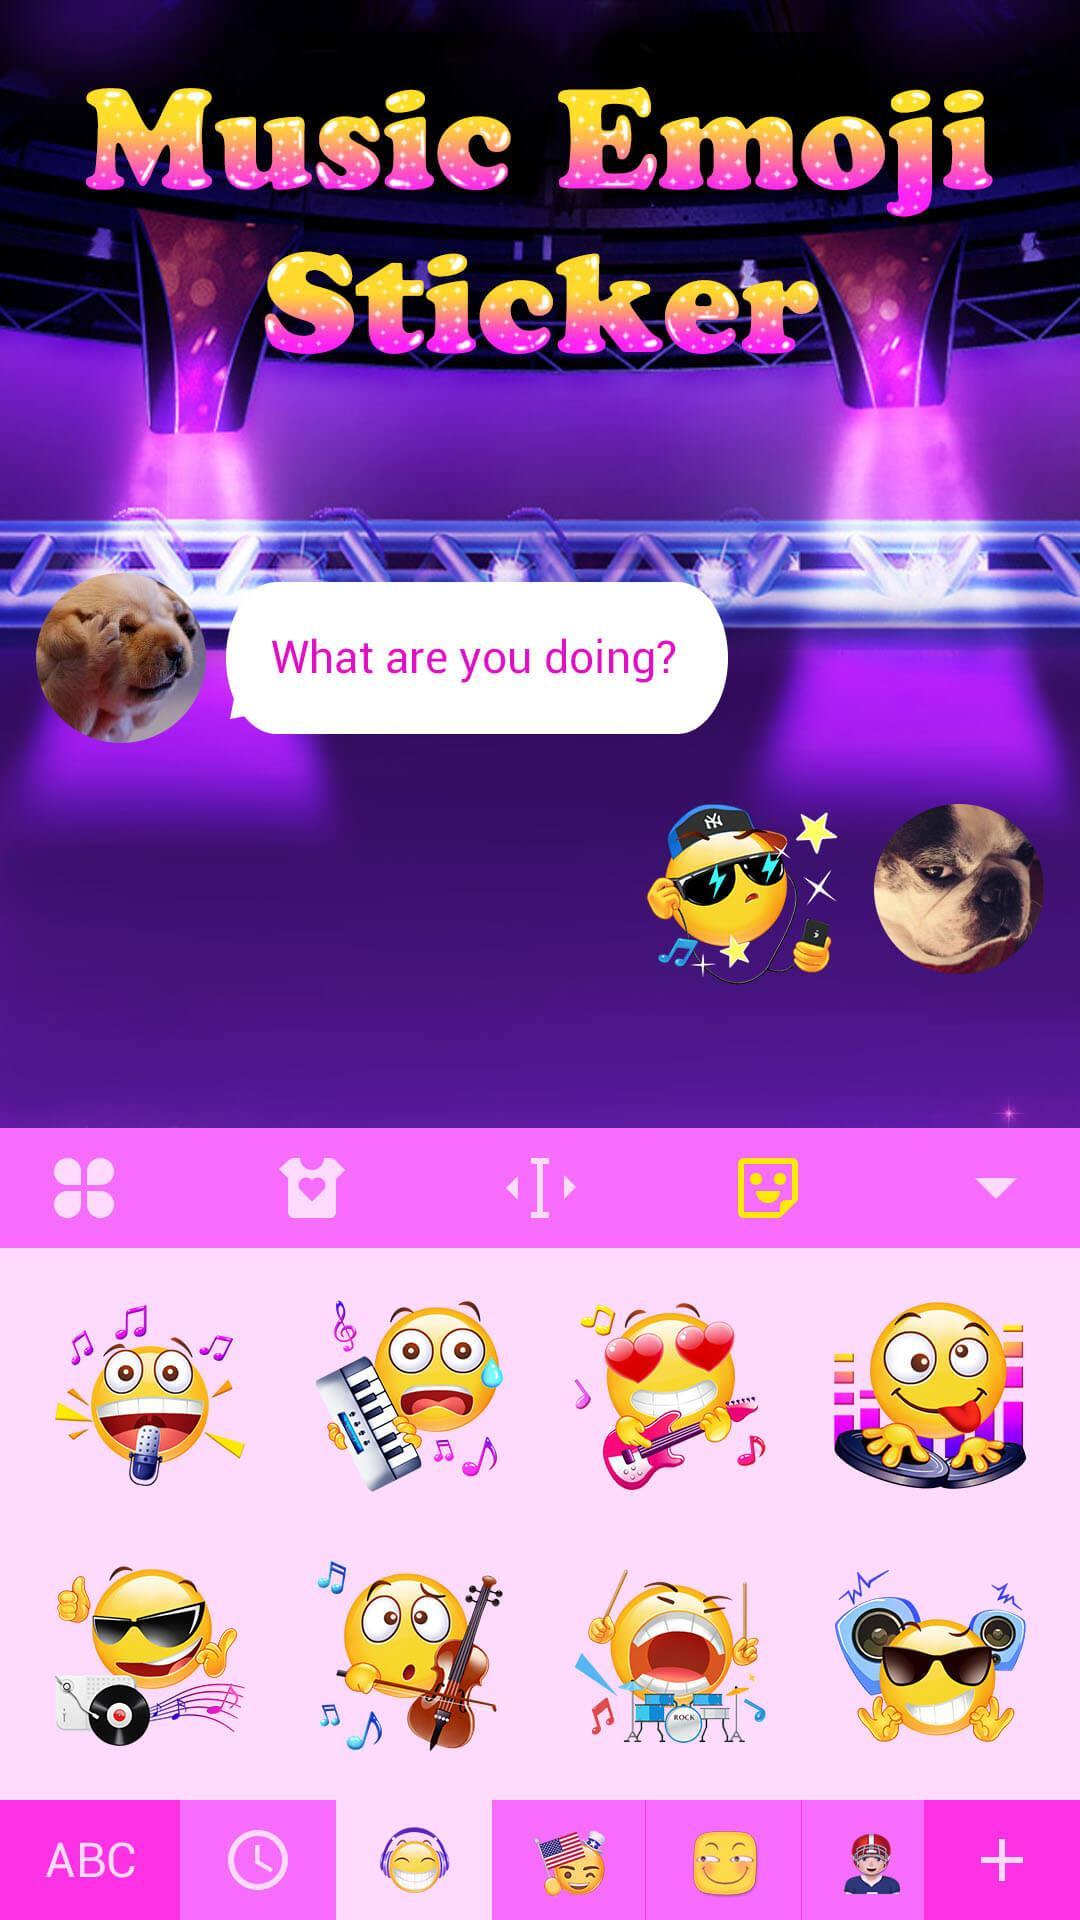 Music Emoji Sticker for Snapchat for Android - APK Download